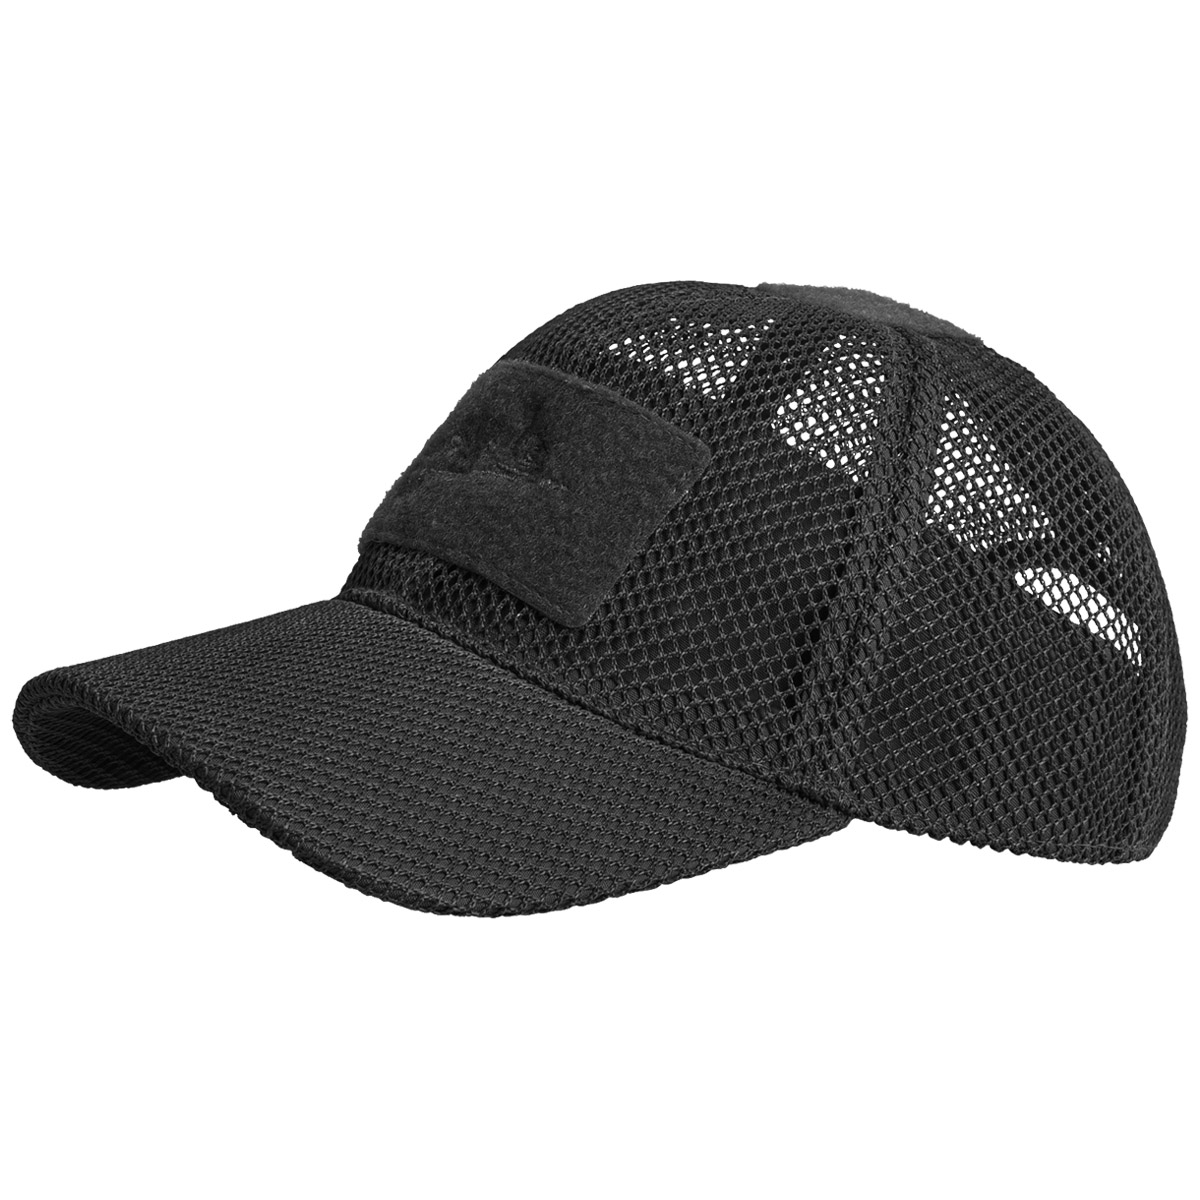 Details about Helikon Tactical Mesh Baseball Cap Breathable Hat Airsoft  Hunting Security Black ccc00518ef7